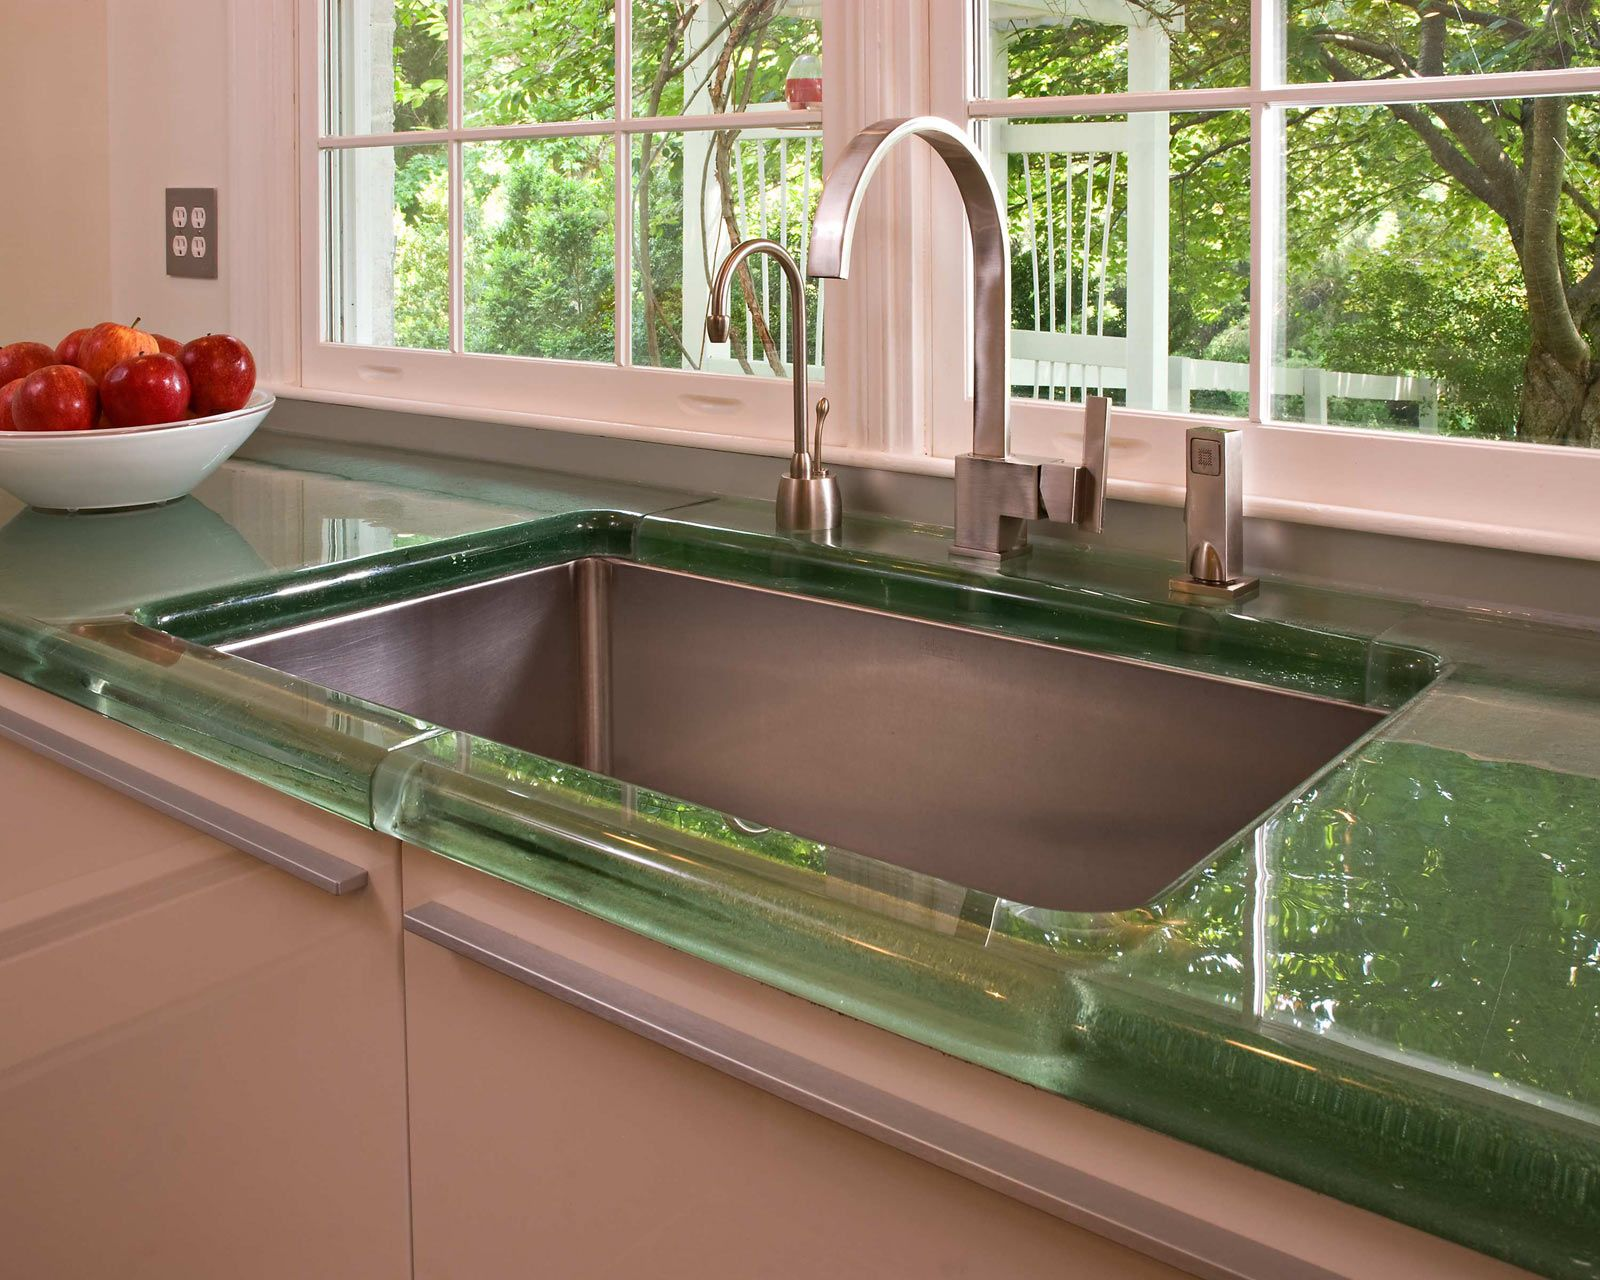 cheap kitchen countertop ideas. Glass Countertops Ideas With Brown Cabinet Within Set Yourself Apart A Truly Stunning Countertops. Kitchen Countertop Cheap